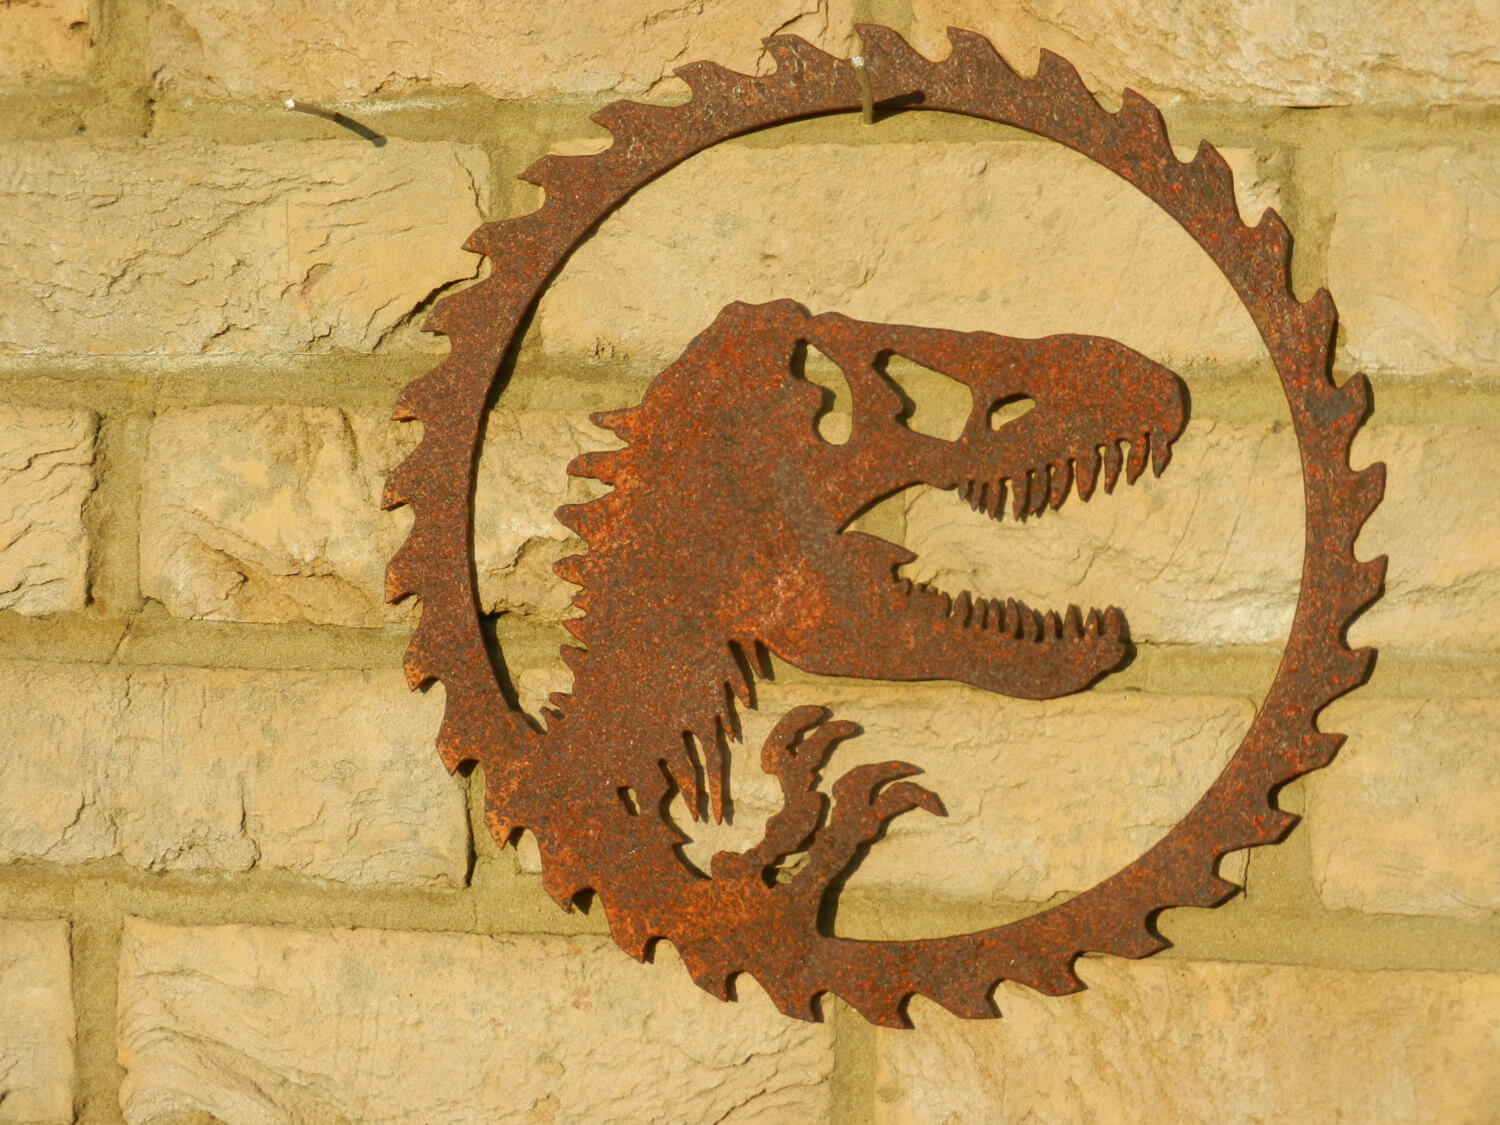 Dinosaur themed wall art! Just what every kid wants